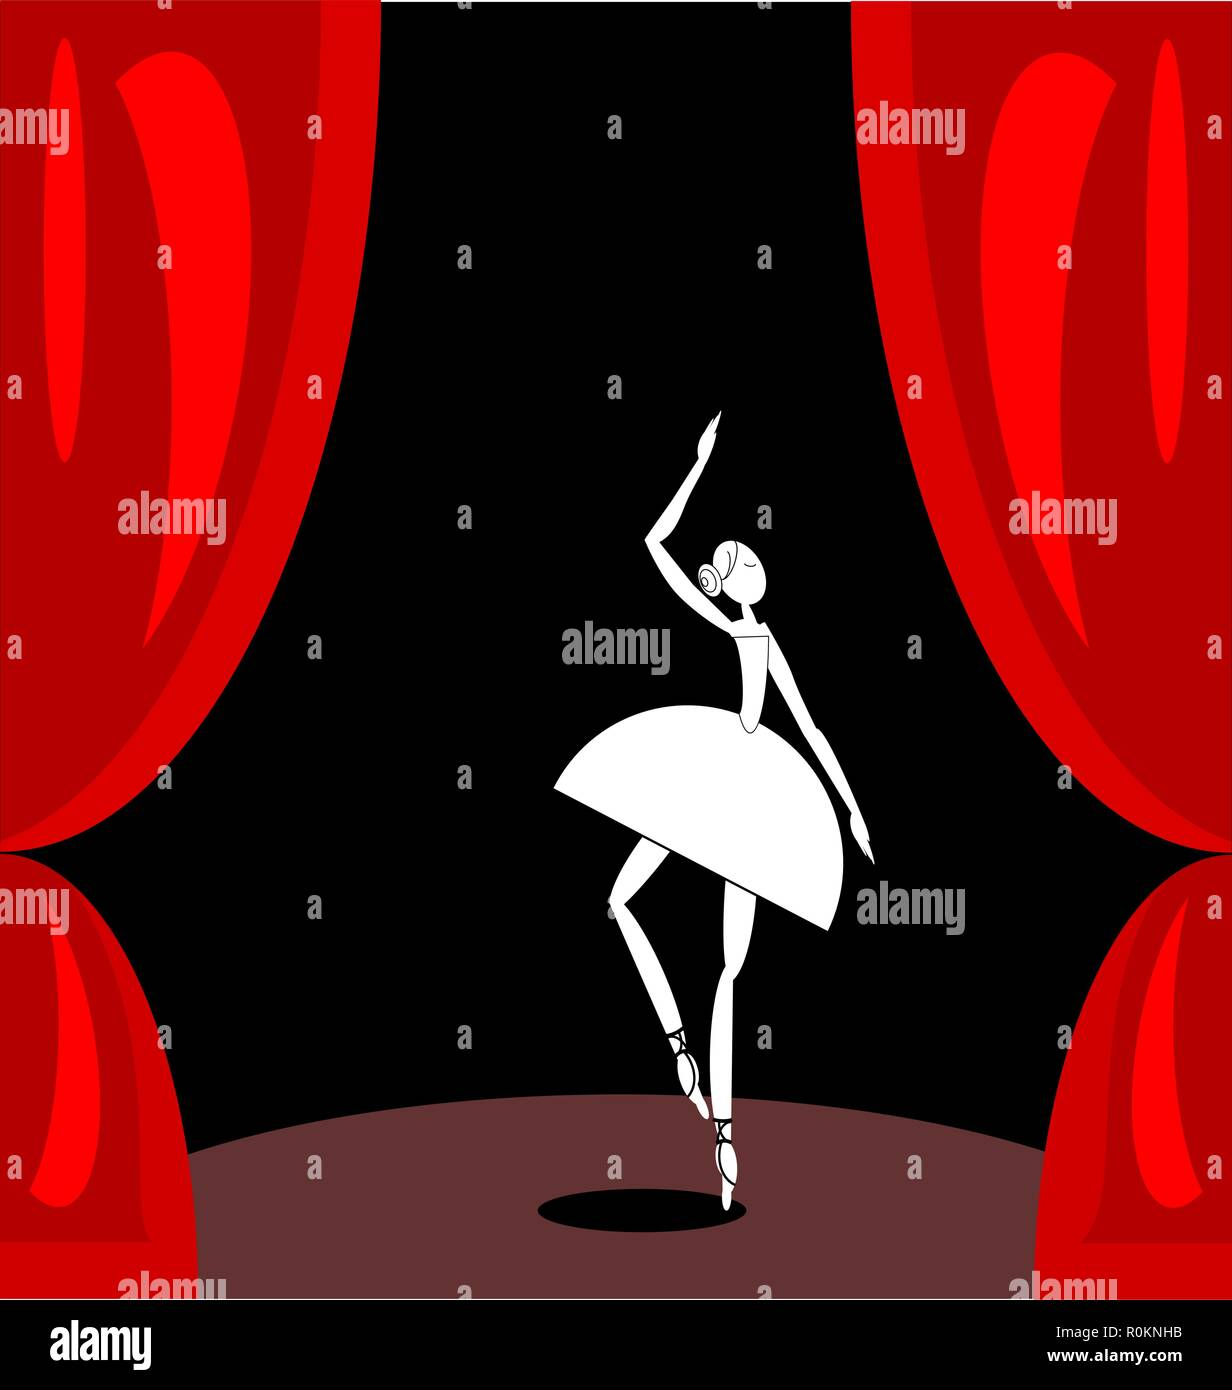 dark red scene and white abstract ballet dancer - Stock Vector